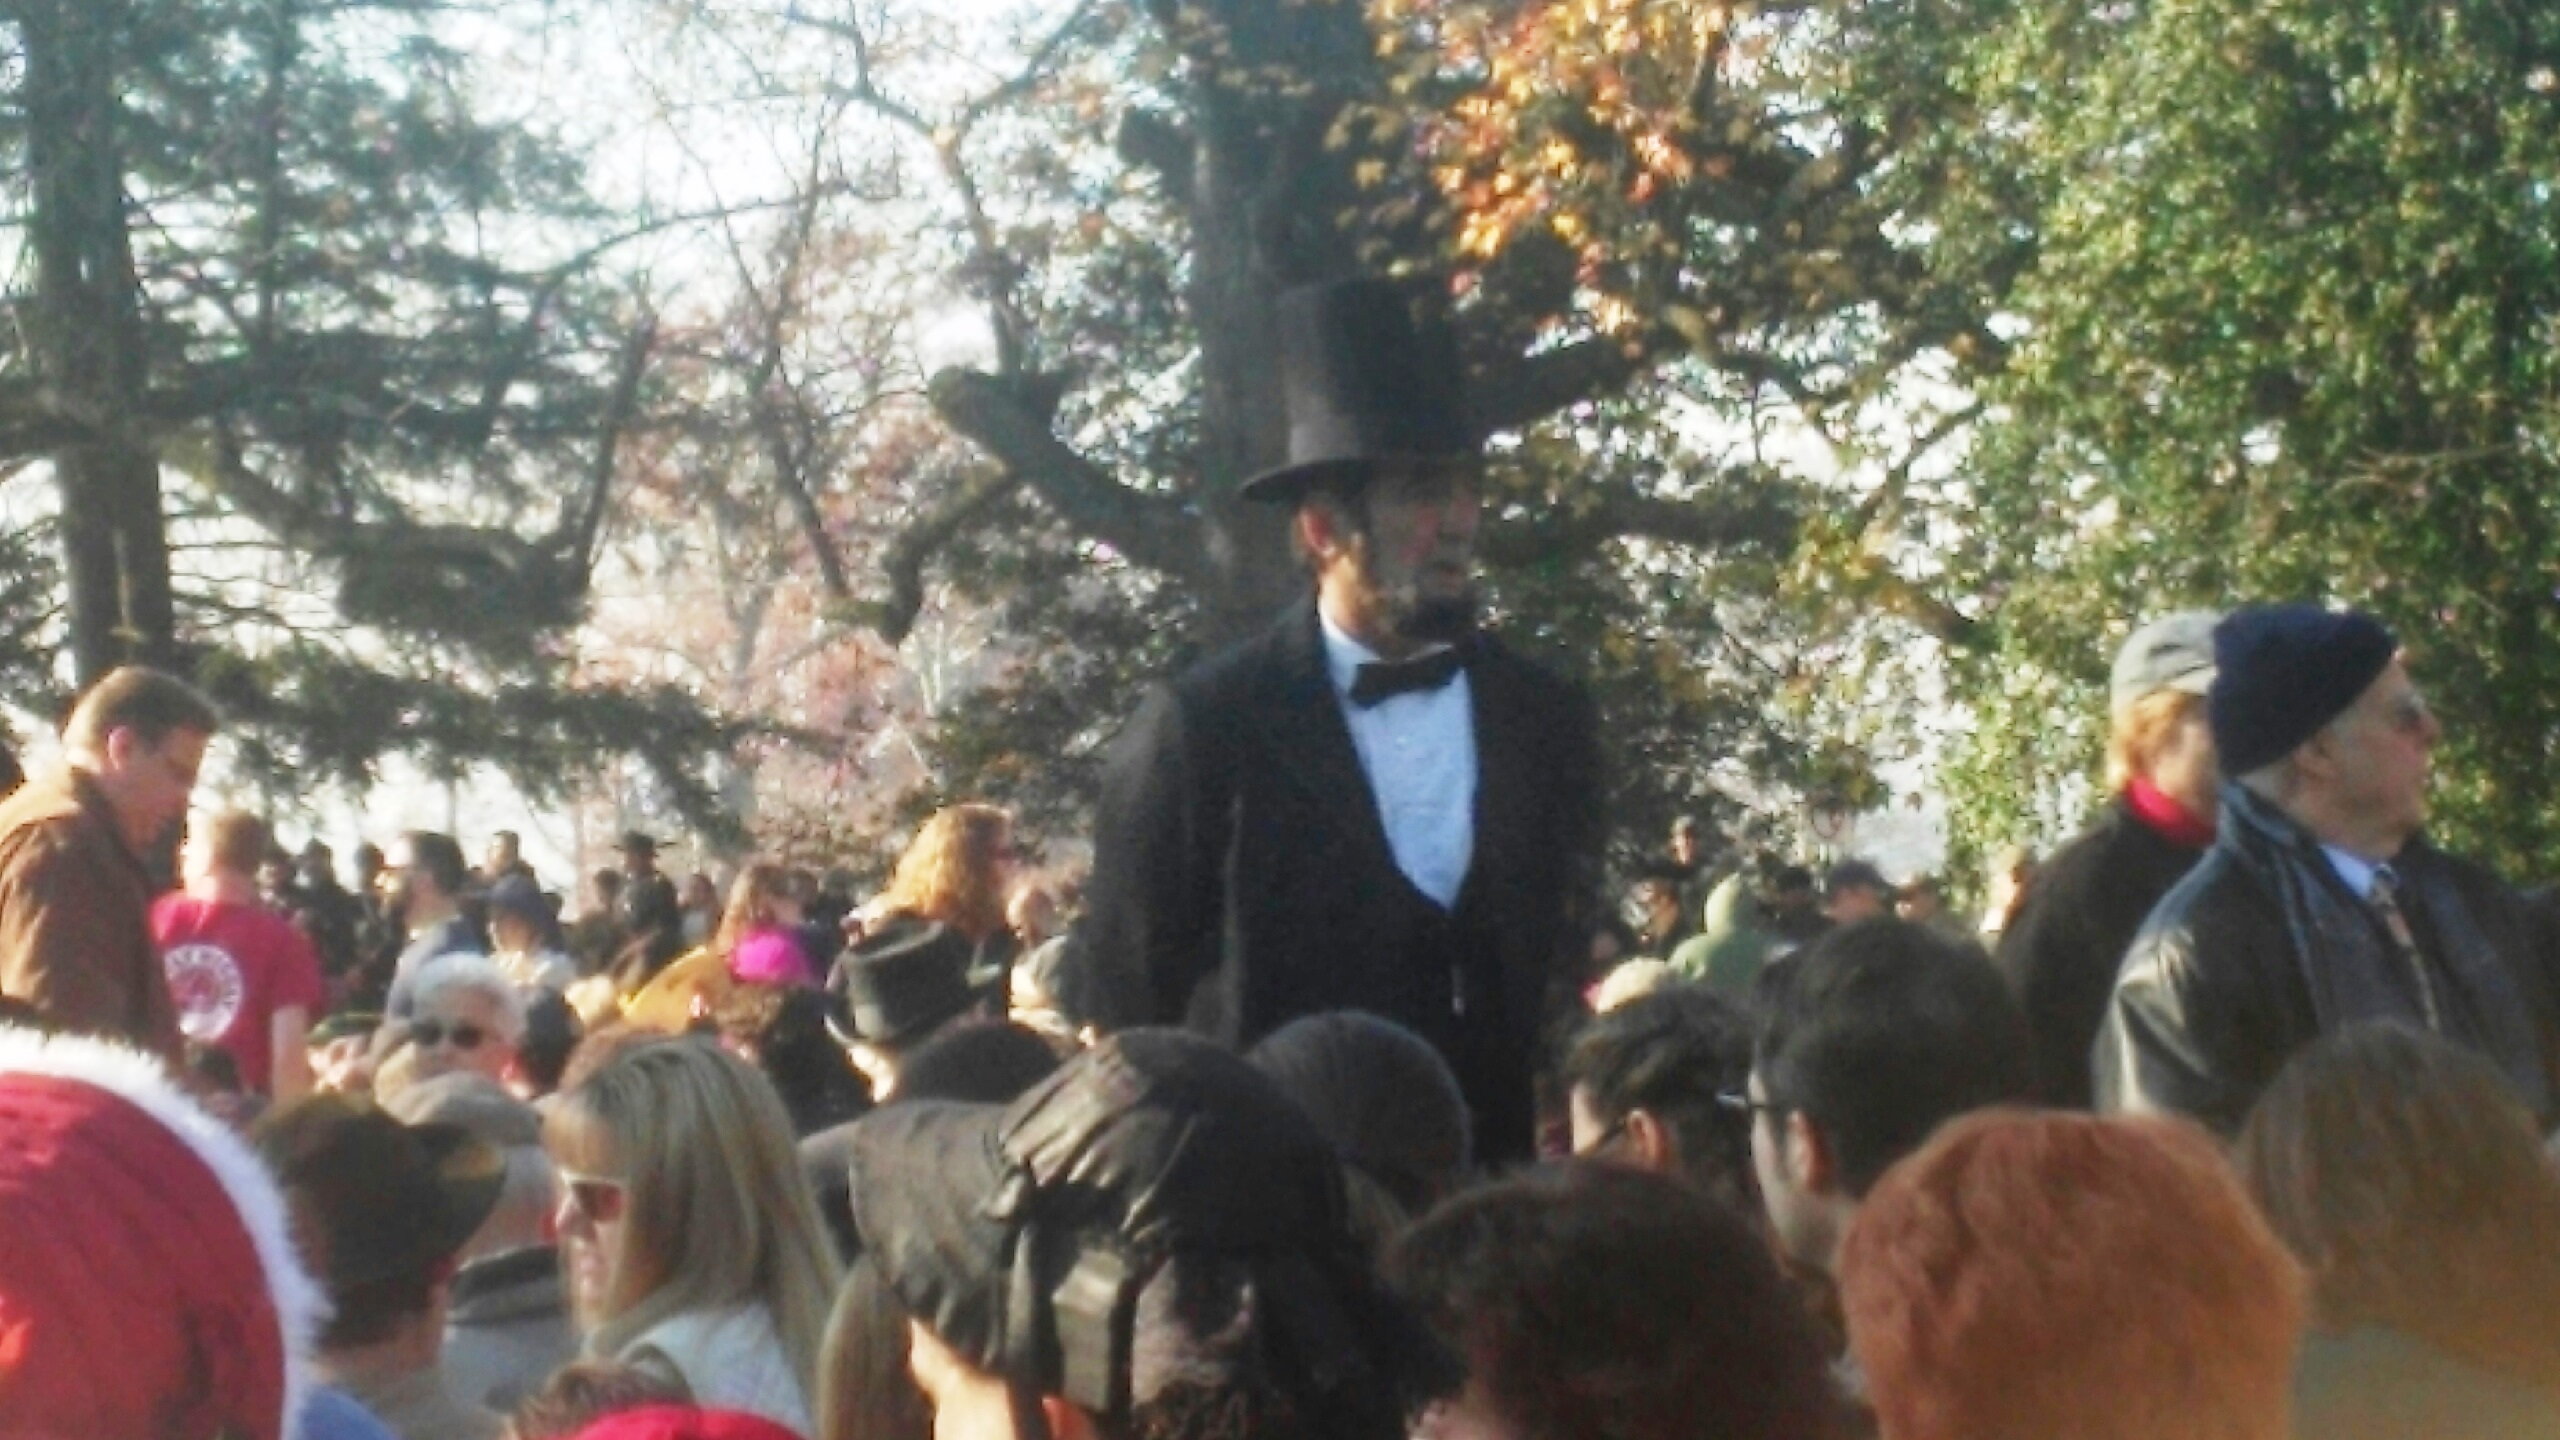 gettysburg address faith and history abraham lincoln working the crowd before the program began